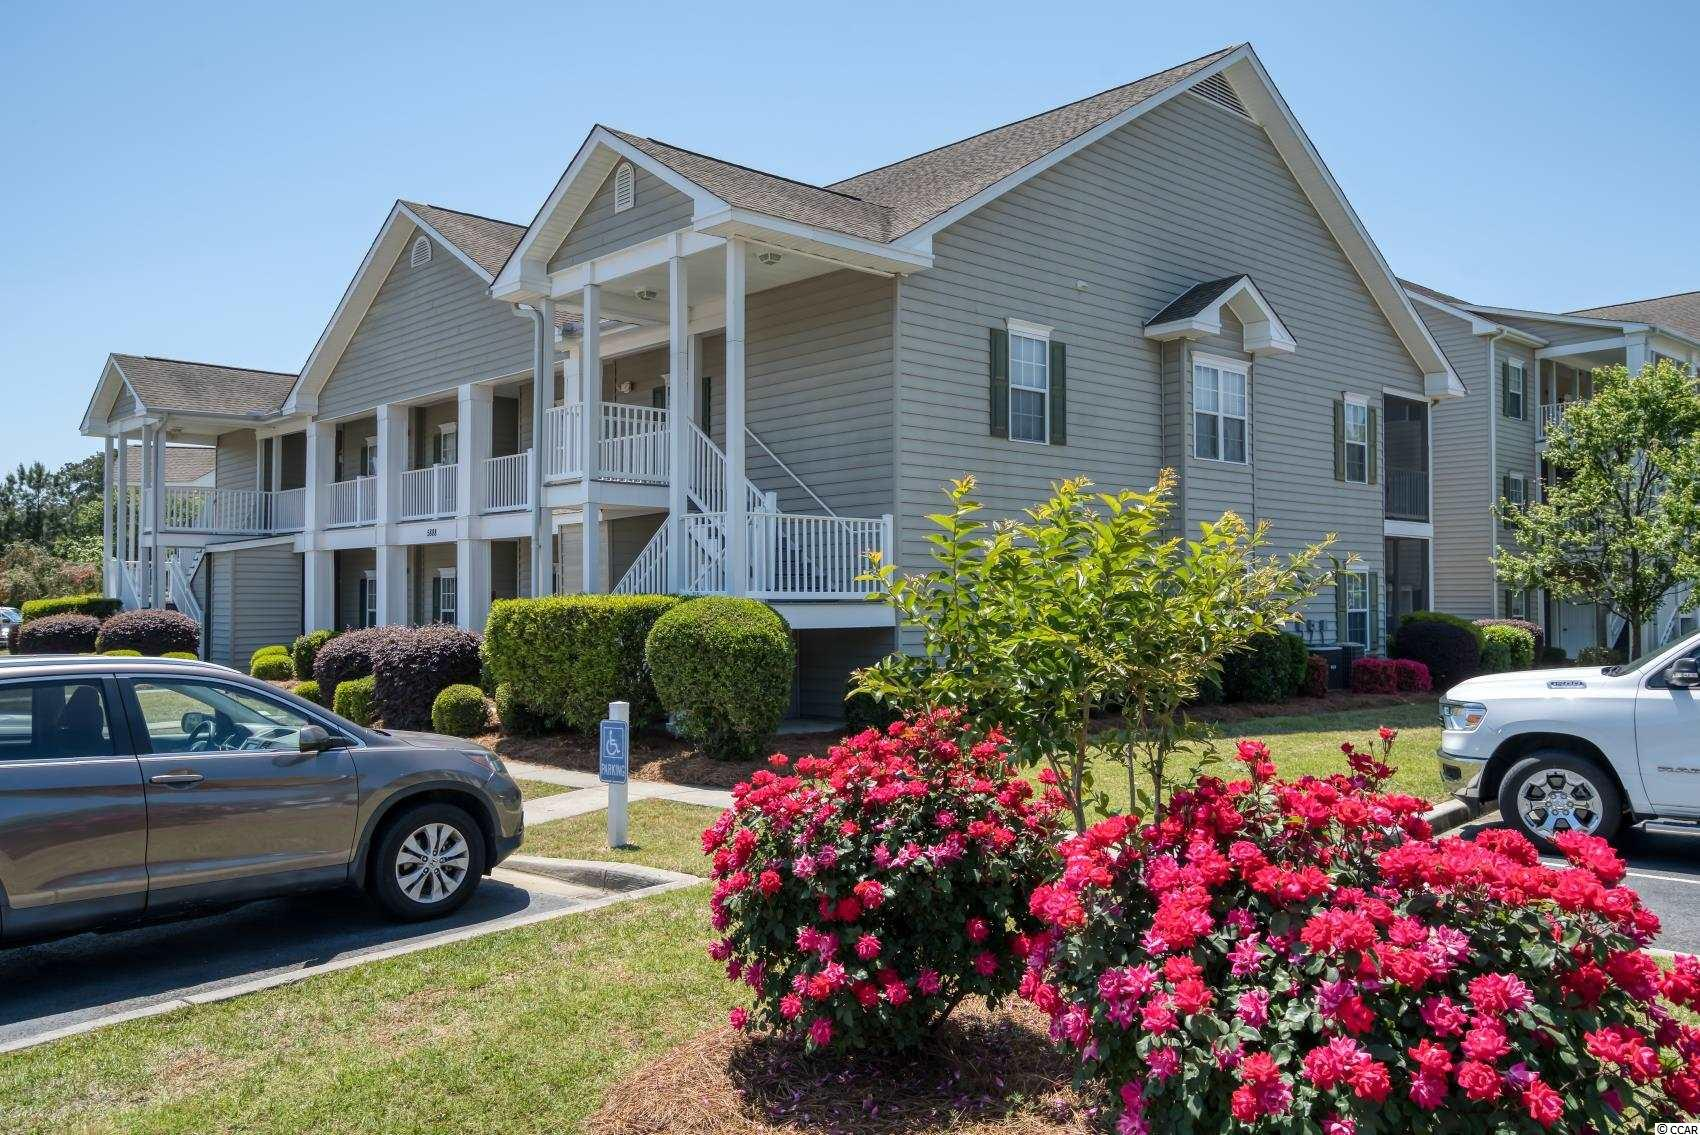 1ST FLOOR UNIT, beautiful condo in the Blackmoor Golf Community. This is a 3 bed/2 bath condo that has been well maintained since 2004 by the original owner. This end unit has plenty of windows to let that bright South Carolina sunshine in! Large master suite with his/her closets and a double vanity. This unit features an AC unit, water heater, appliances and laminate flooring in the living area that are all less than 4 years old! Condo ownership comes with pool & clubhouse access right across the street and a grilling area for residents. It is conveniently located near all that Murrells Inlet and the South Carolina Coast has to offer. Blackmoor is an extremely beautiful community with numerous ponds, trees and abundant wildlife! This is the friendly, close knit community you are looking for!